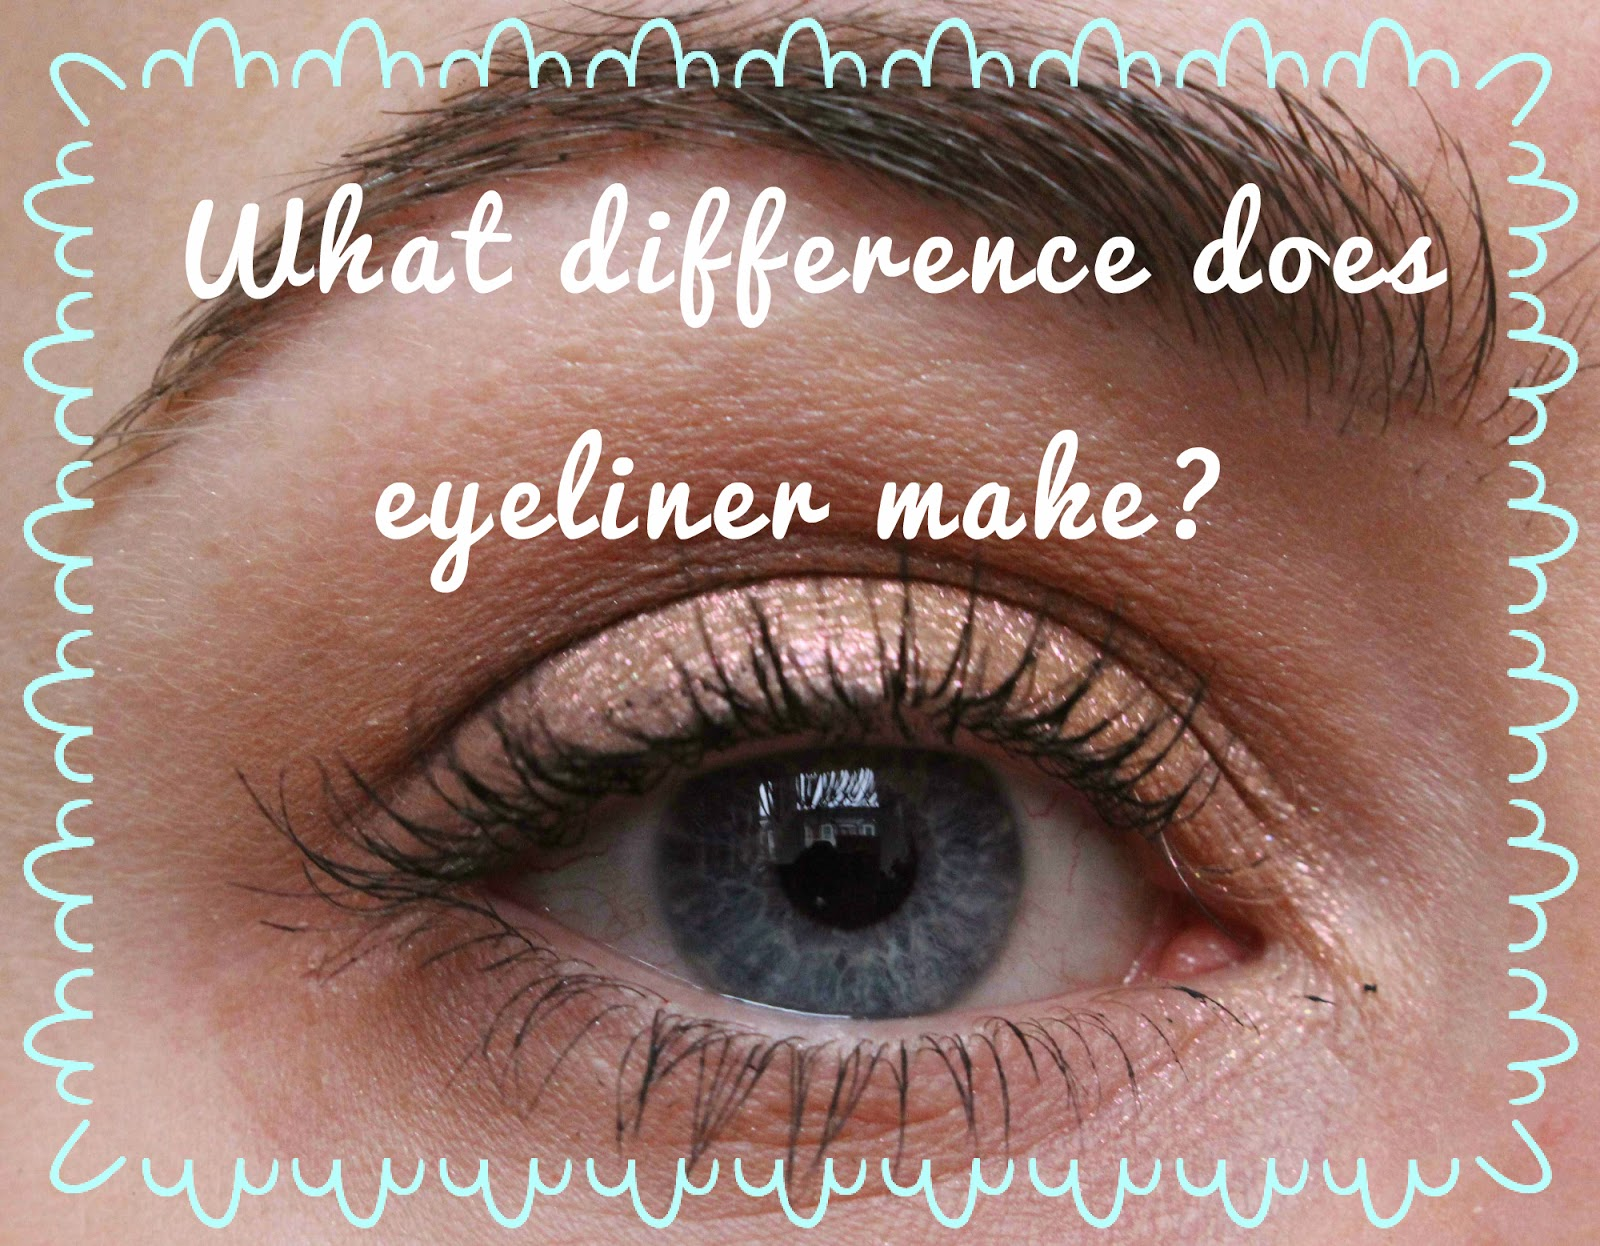 What difference does eyeliner make?